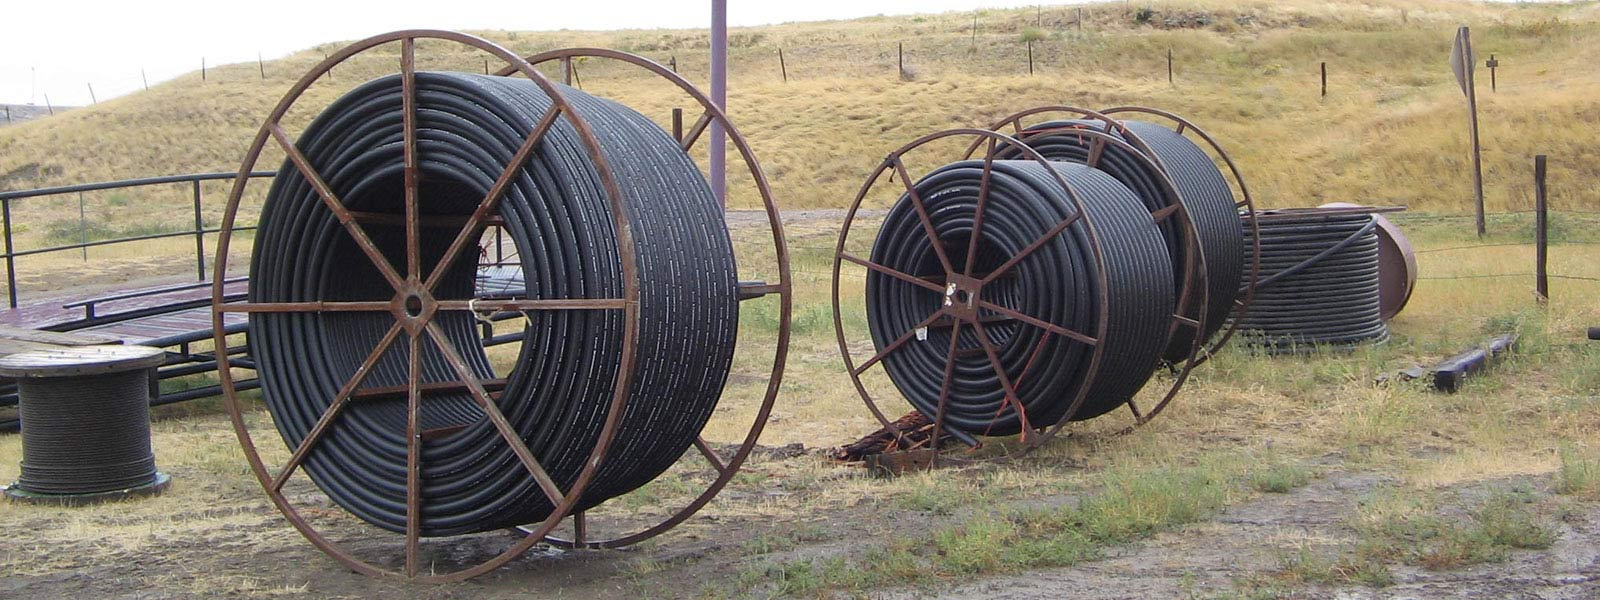 Hdpe Pipes Manufacturers in Delhi (India)| Berliapipes| Plb Duct